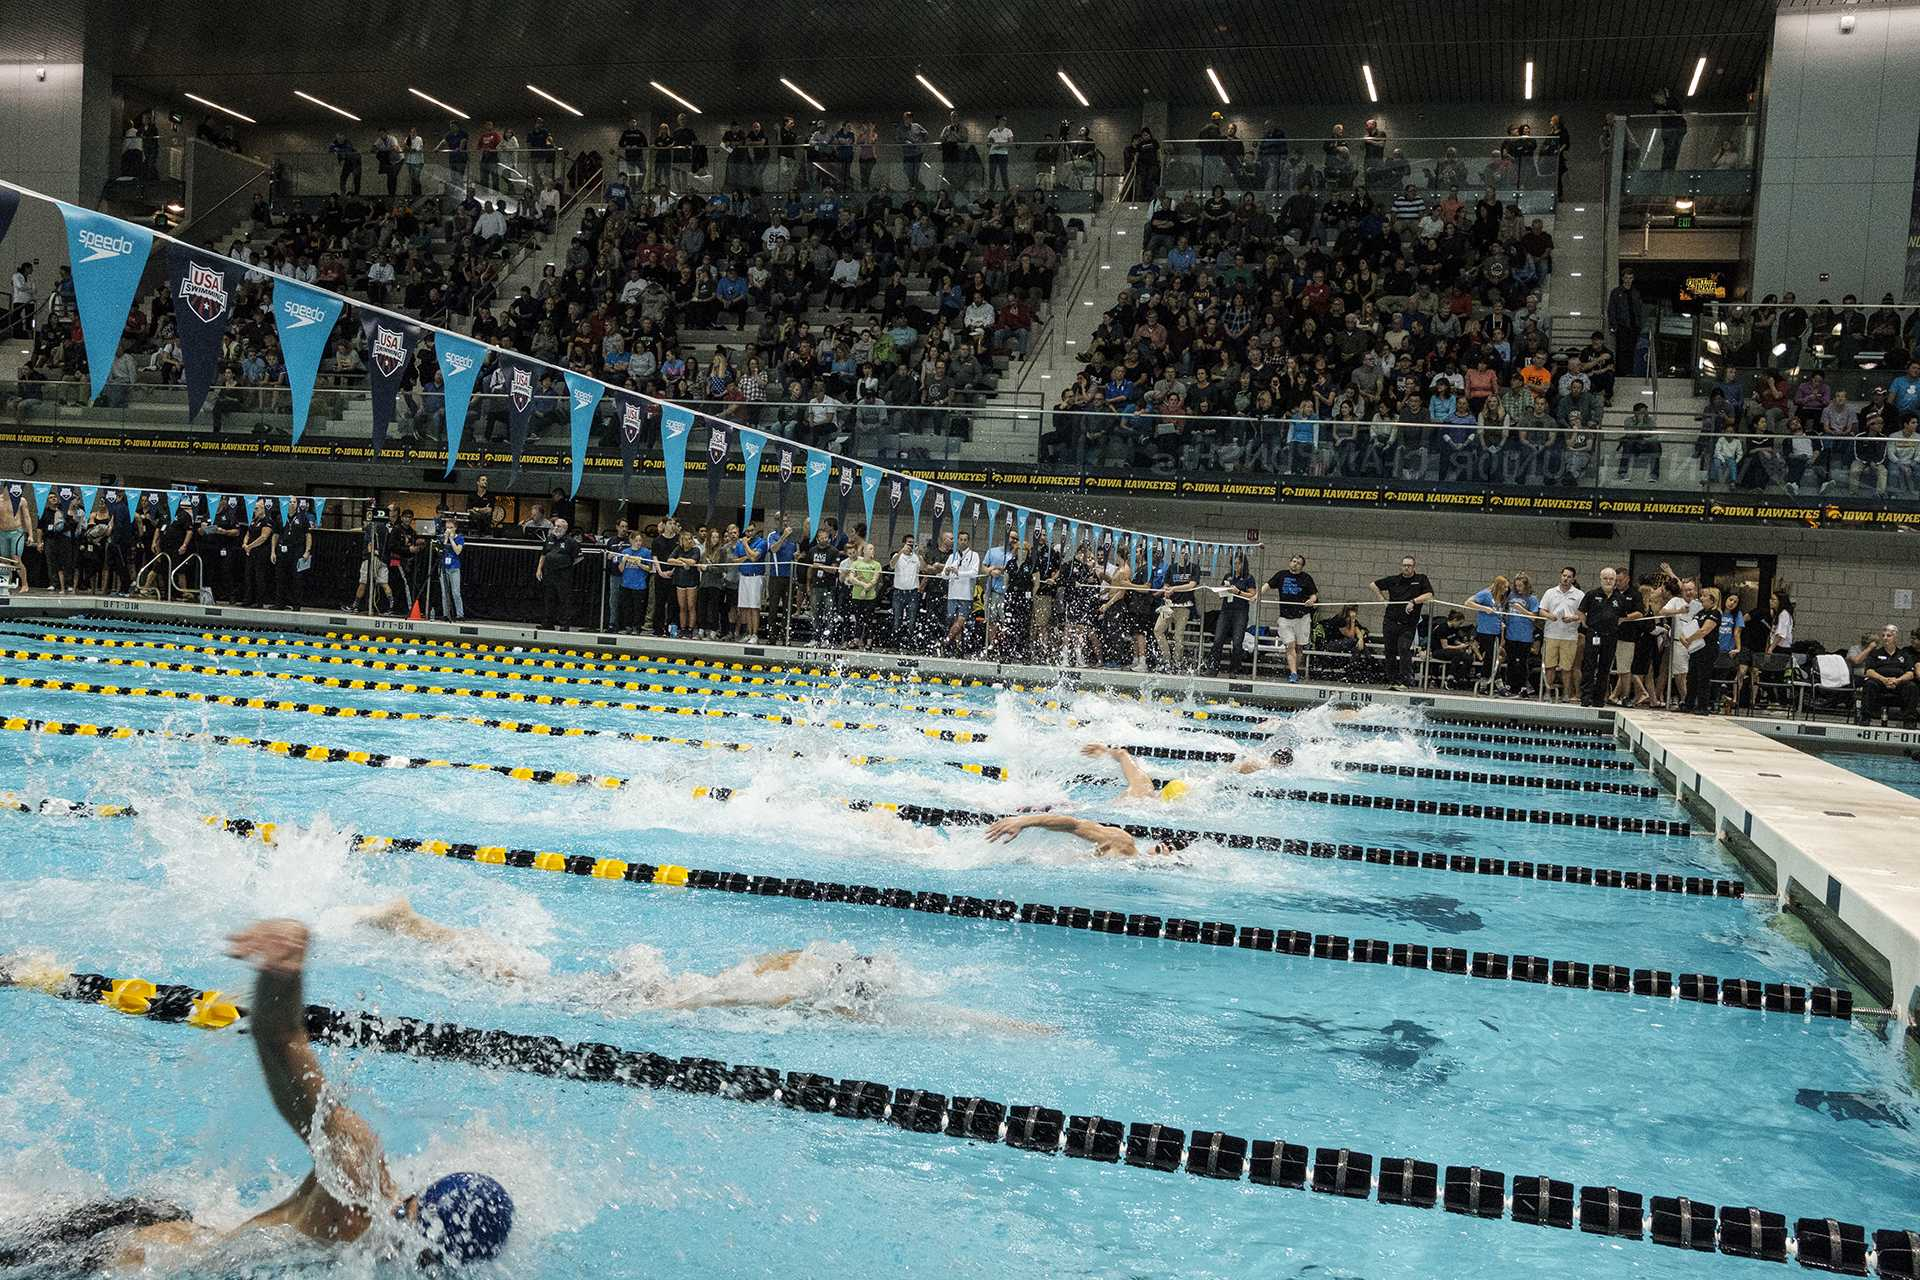 Swimmers compete during the USA Swimming West Junior Nationals on Saturday Dec. 9, 2017. (Nick Rohlman/The Daily Iowan)